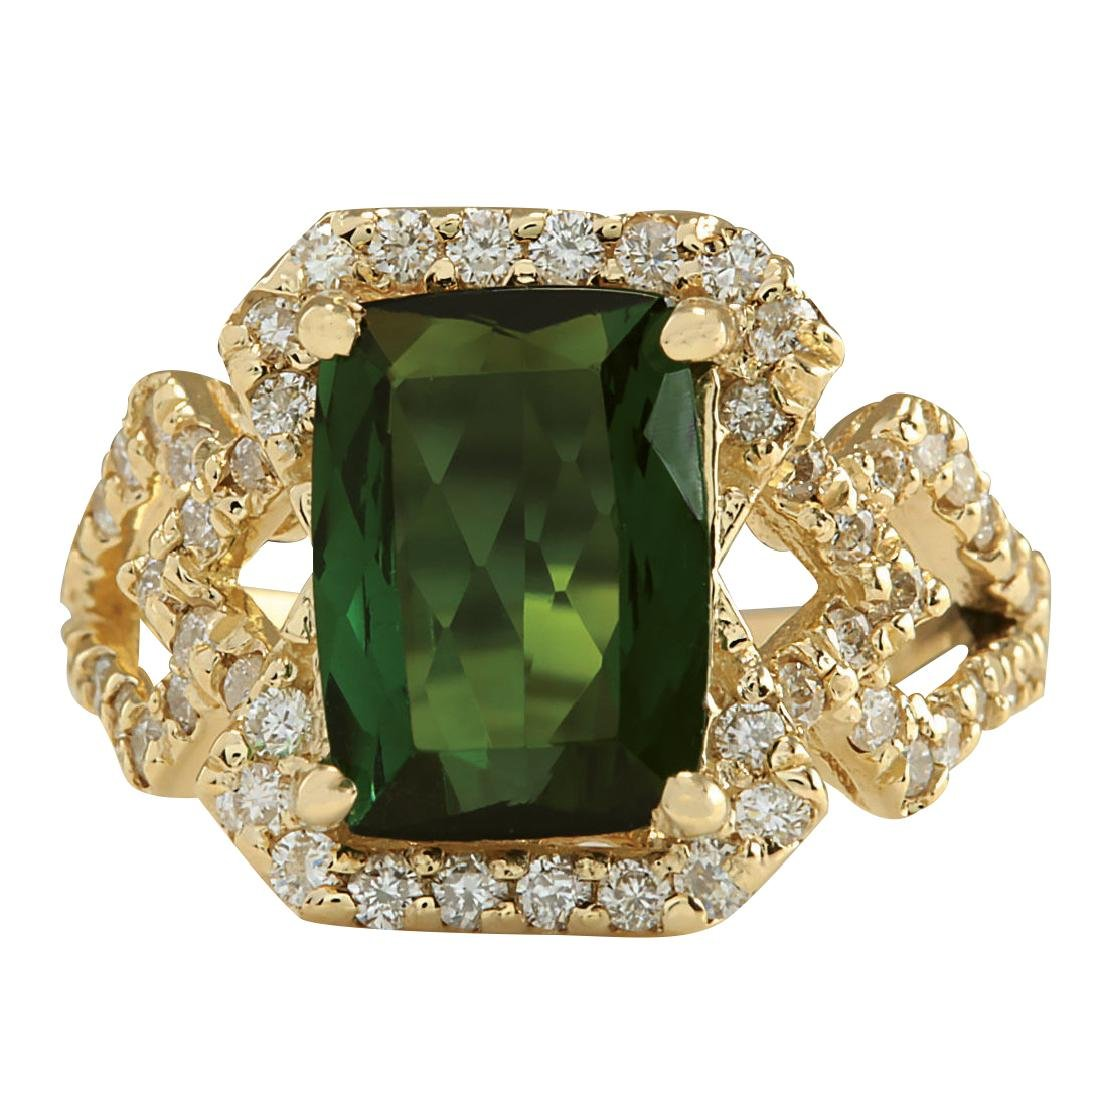 3.84Ct Natural Green Tourmaline And Diamond Ring In18K